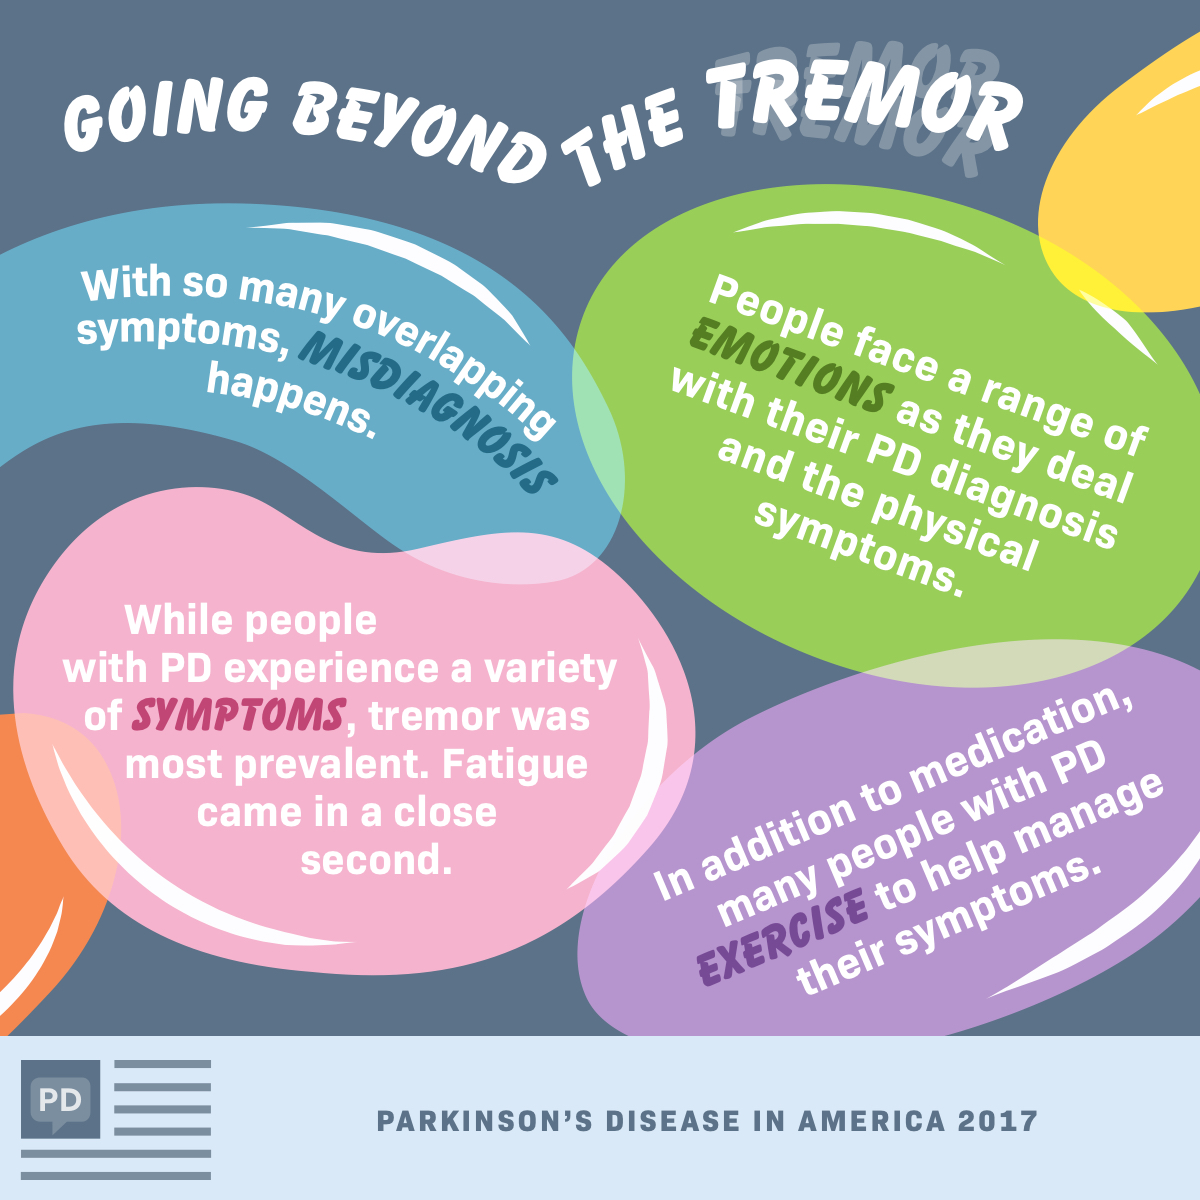 Going Beyond the Tremor